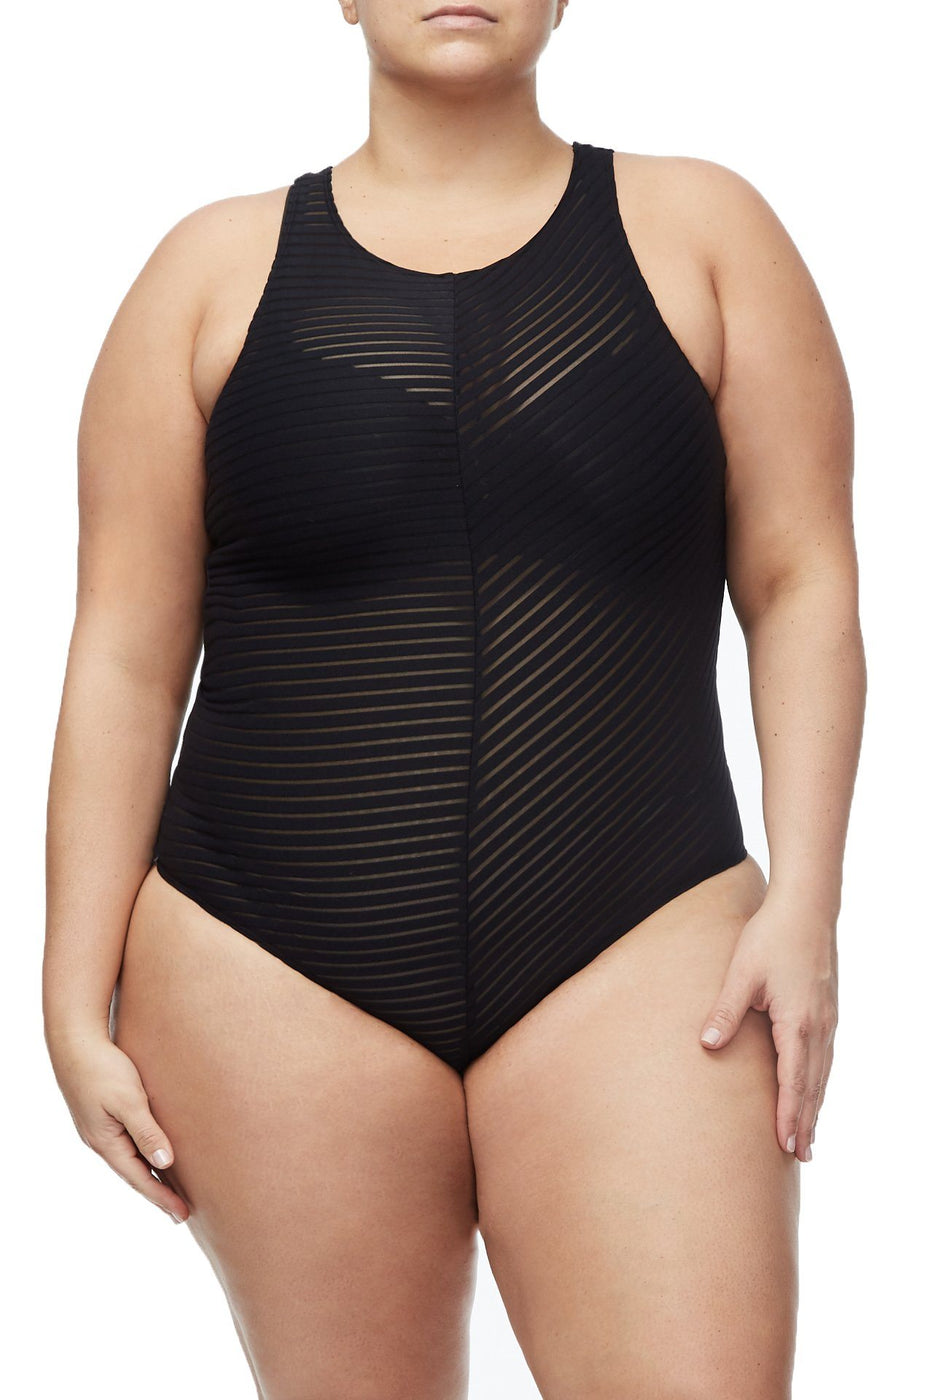 THE BE-SHEER-NOW BODY | BLACK001